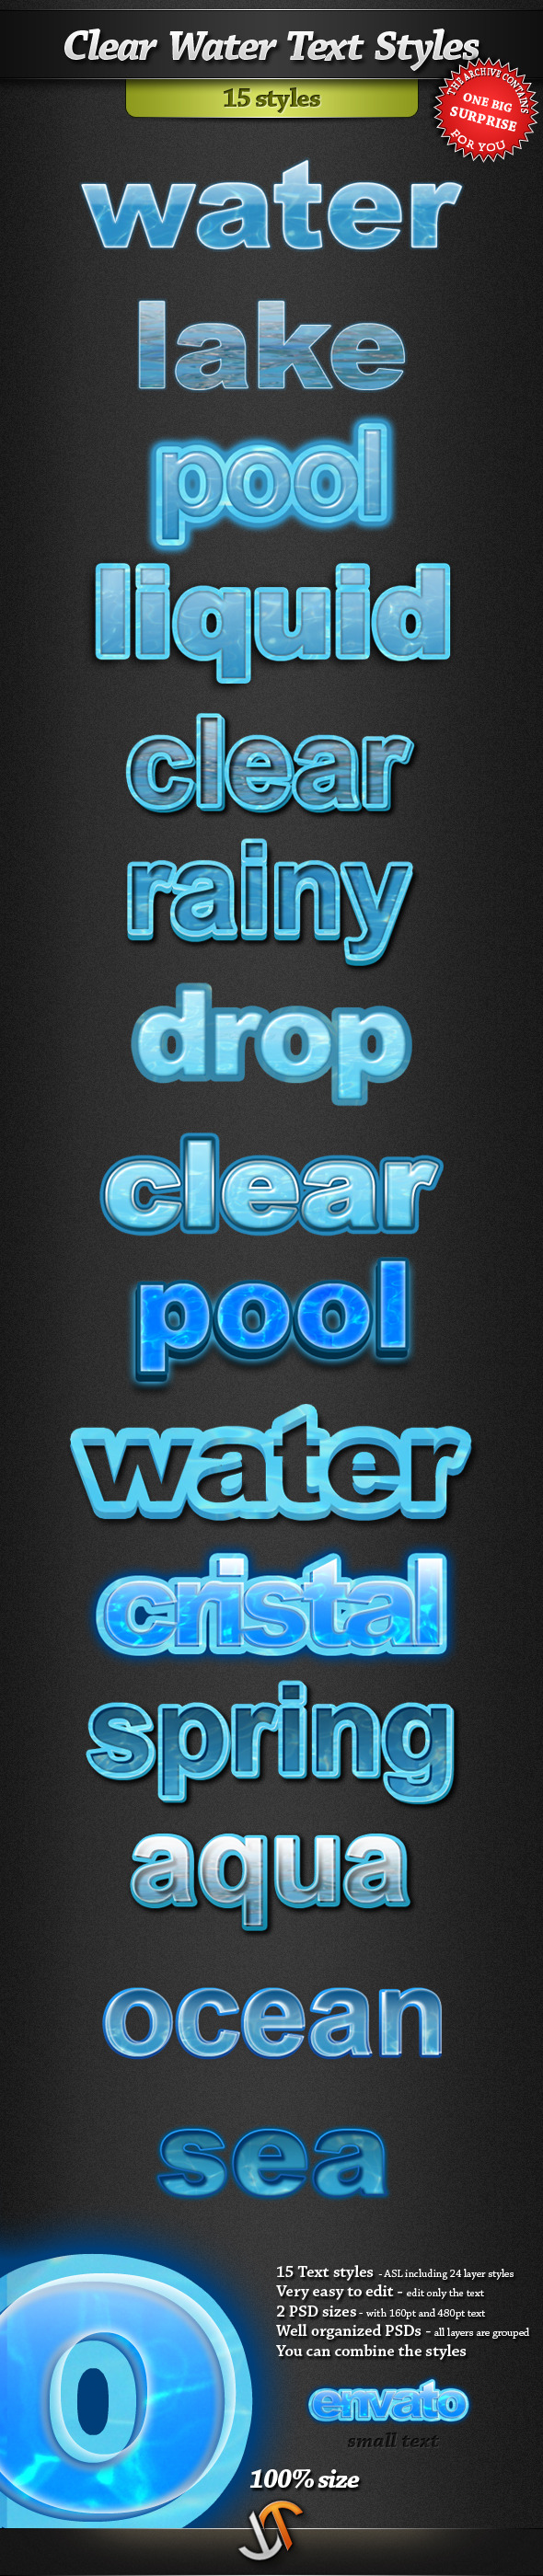 Clear Water Text Styles - Text Effects Styles